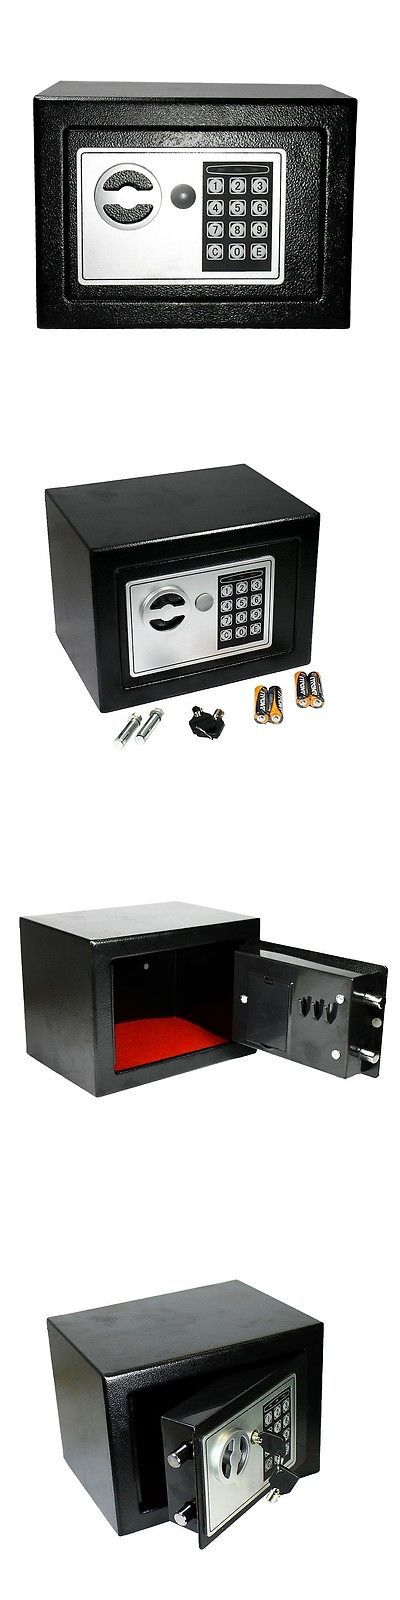 Cabinets and Safes 177877: Hand Gun Safe Pistol Box Lock Vault Handgun Storage Safes Cabinet Home Security -> BUY IT NOW ONLY: $39.95 on eBay!